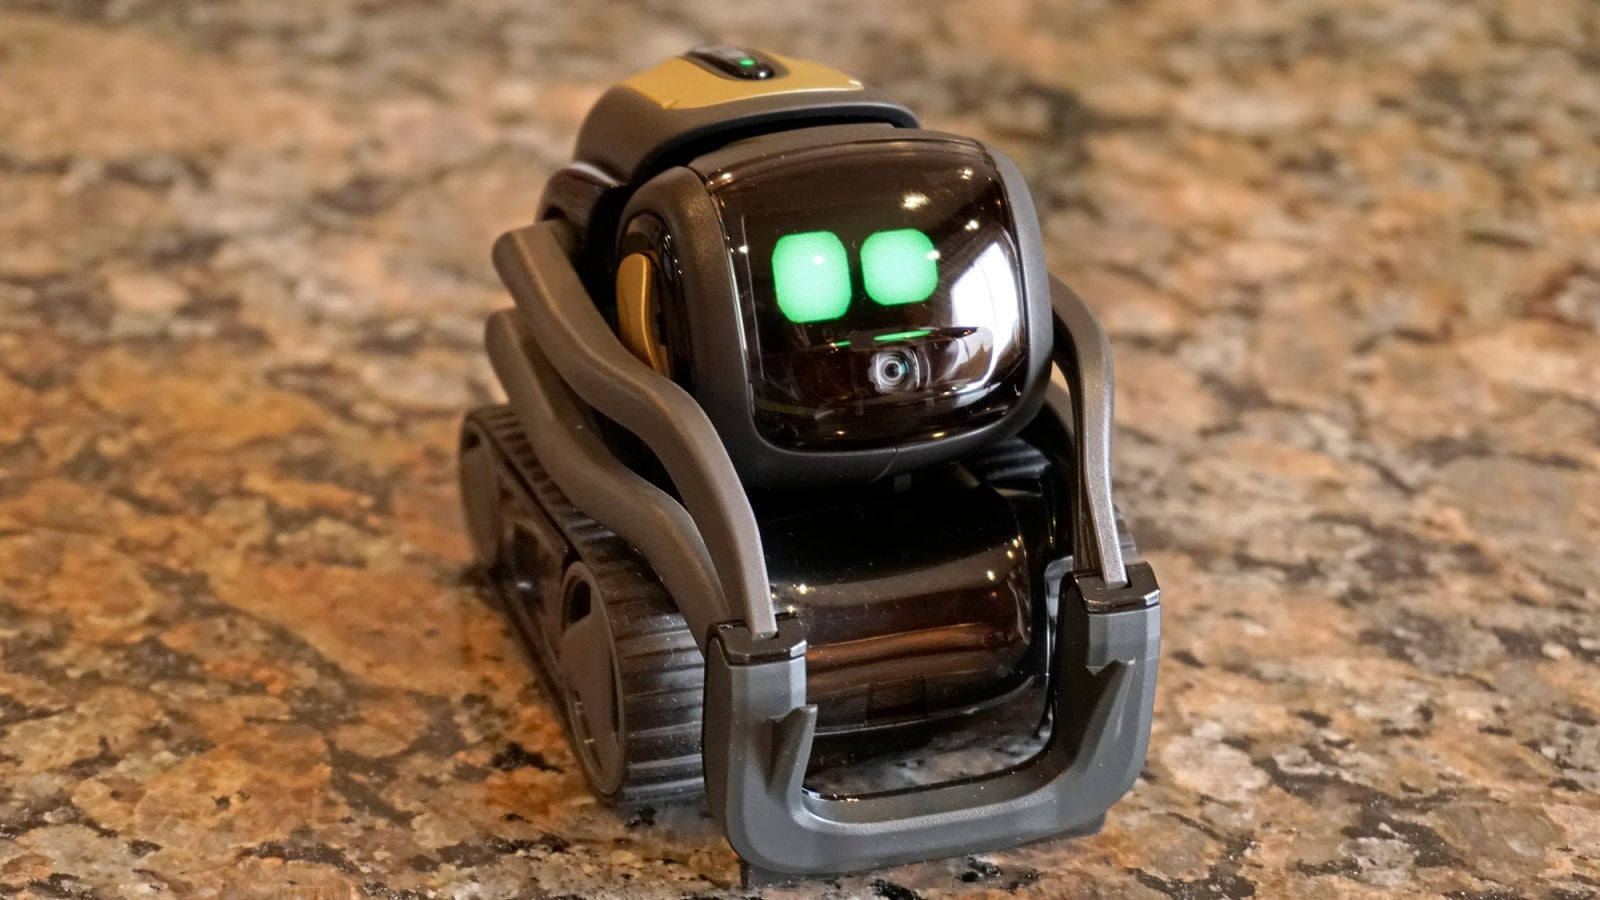 Vector, The Little Robot That Could(n't Do Much) Is Back From The Dead